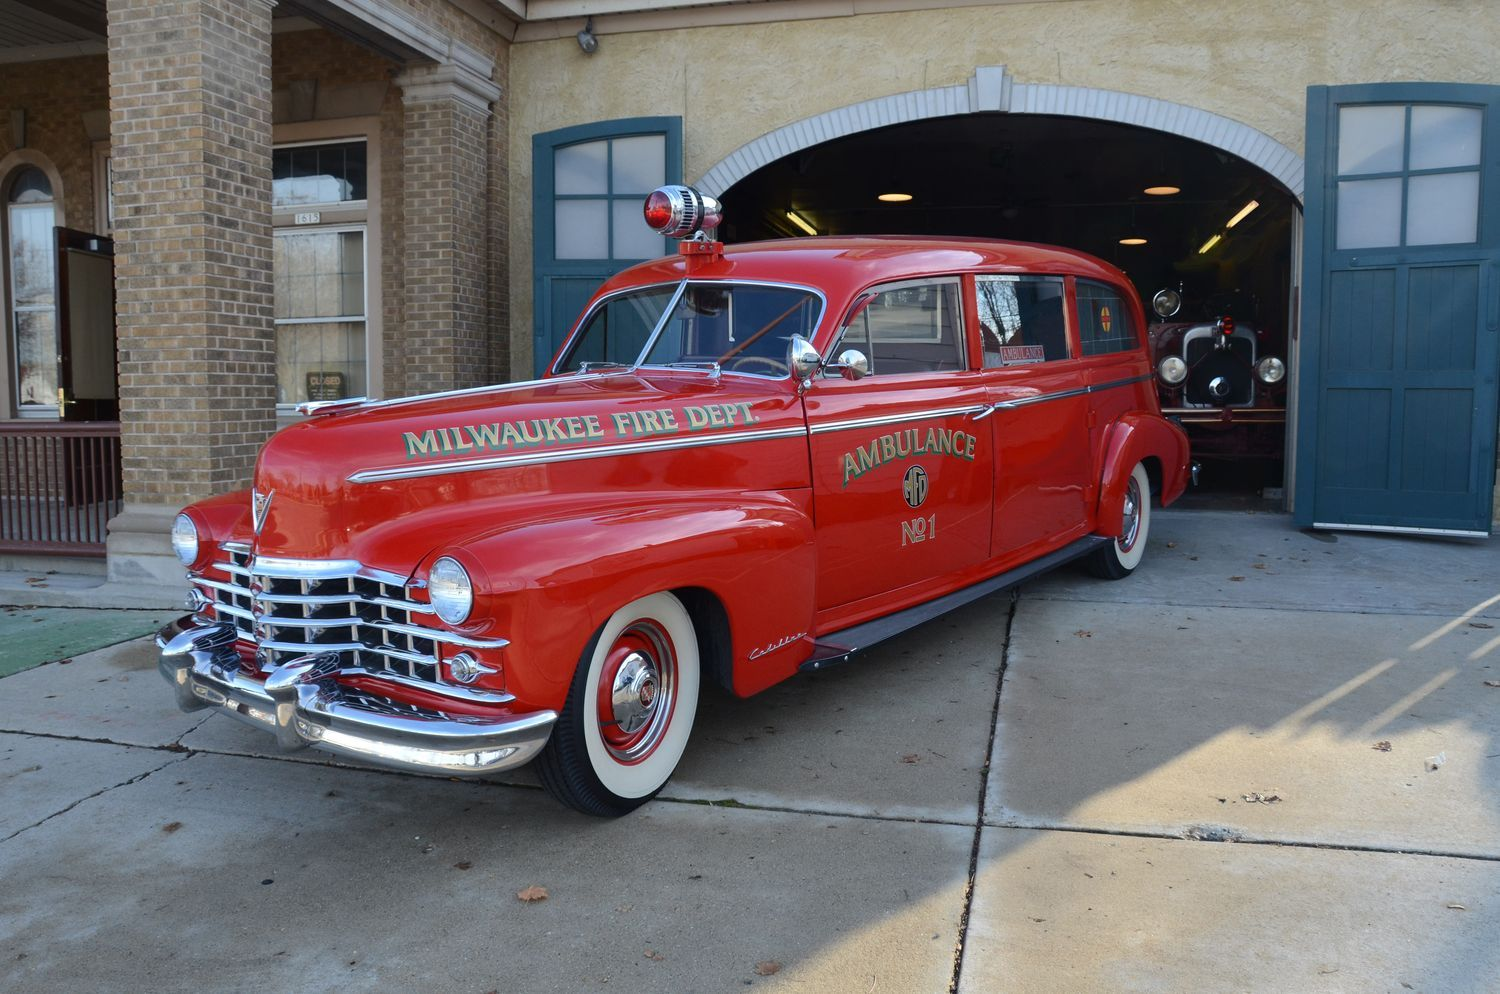 1956 cadillac ambulance red with white roof and hood trim classic gm cars trucks mainly of the 1920 s 30 s 40 s 50 s 60 s 70 s